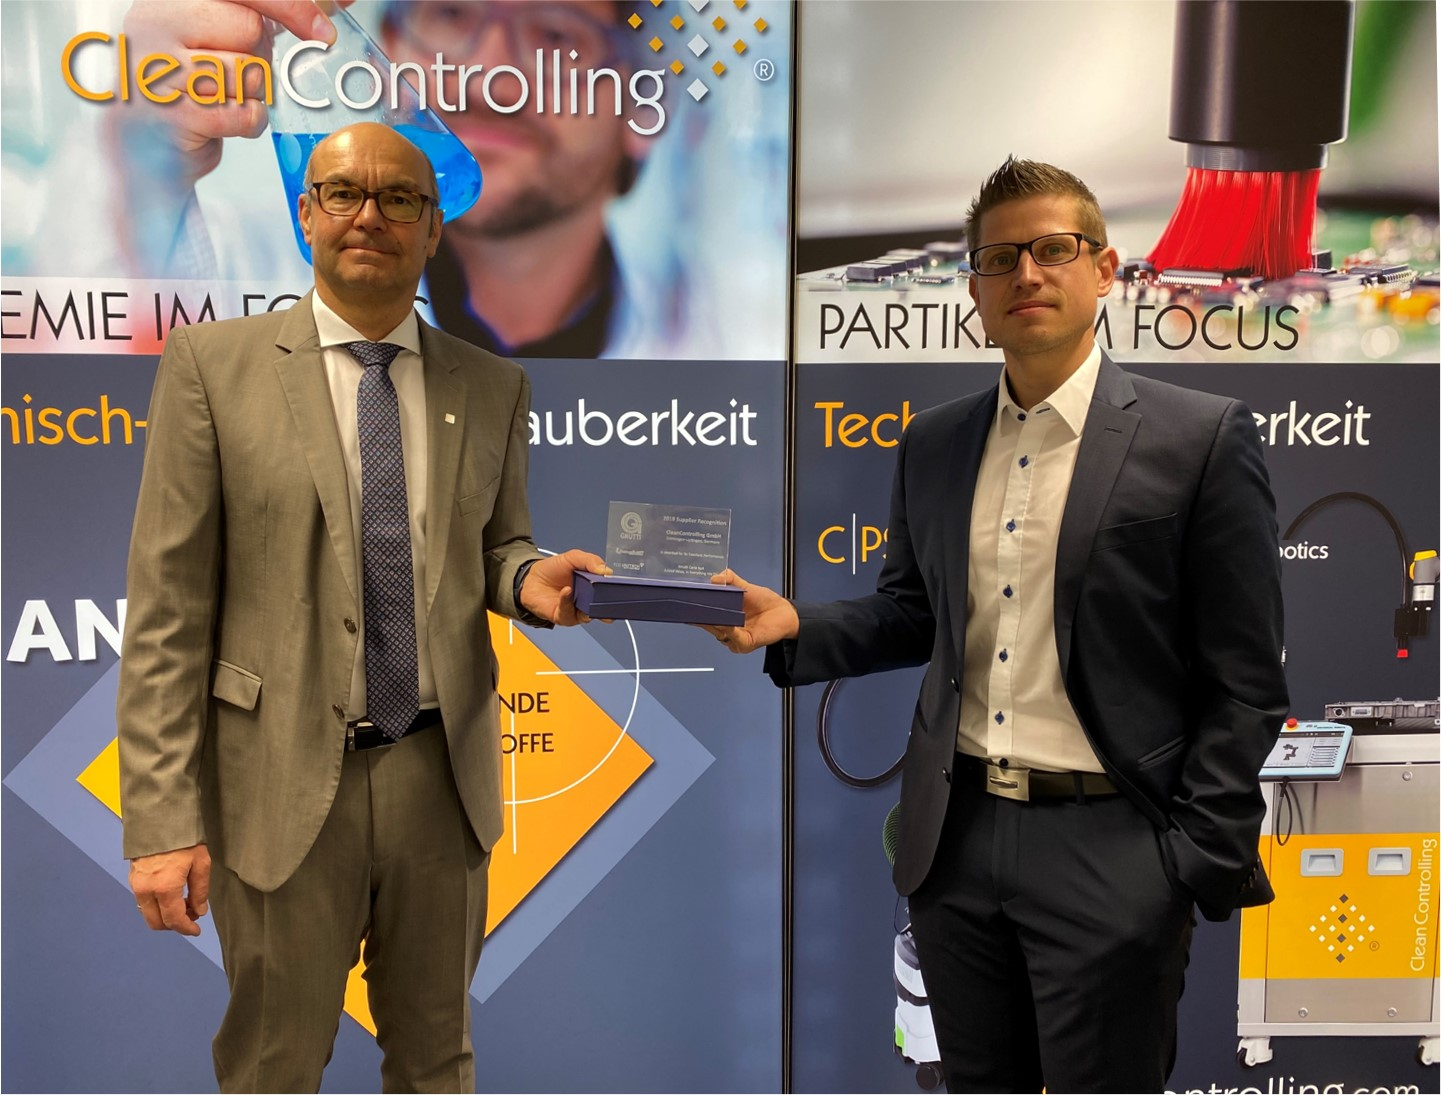 CleanControlling erhält den Gnutti Carlo S.p.A - Supplier Award